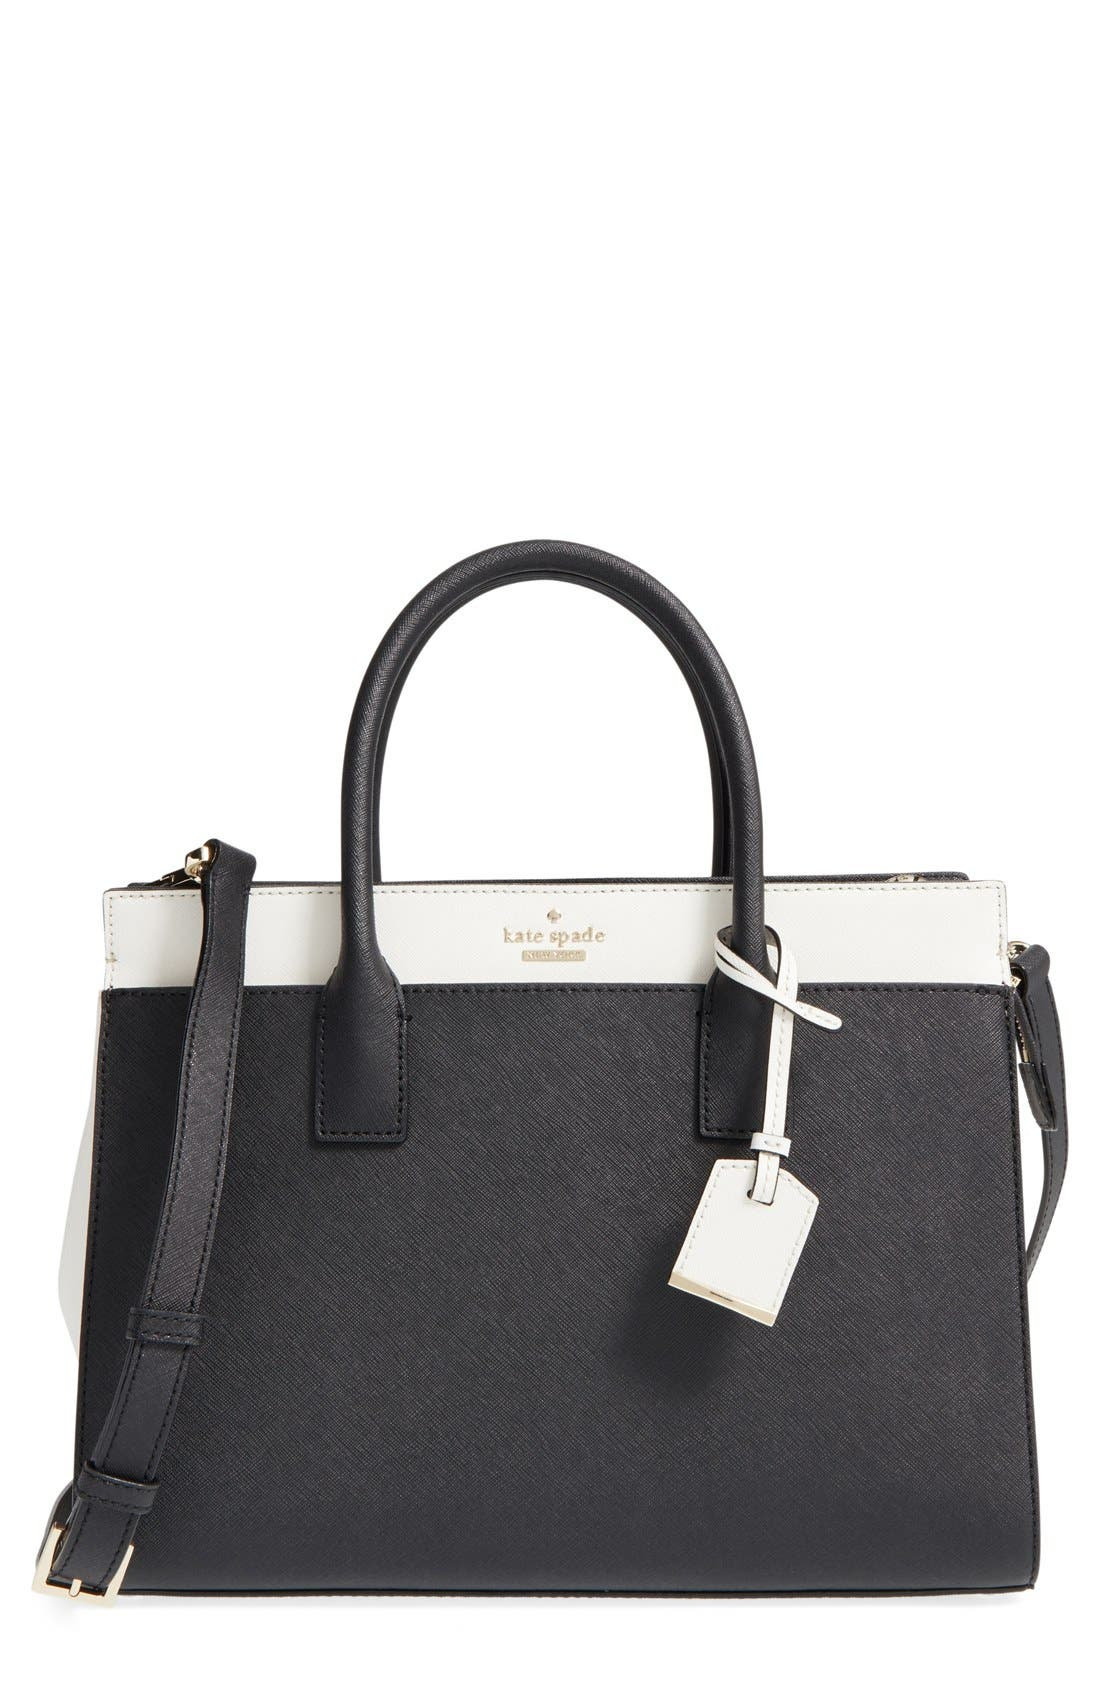 Main Image - kate spade new york cameron street - candace leather satchel